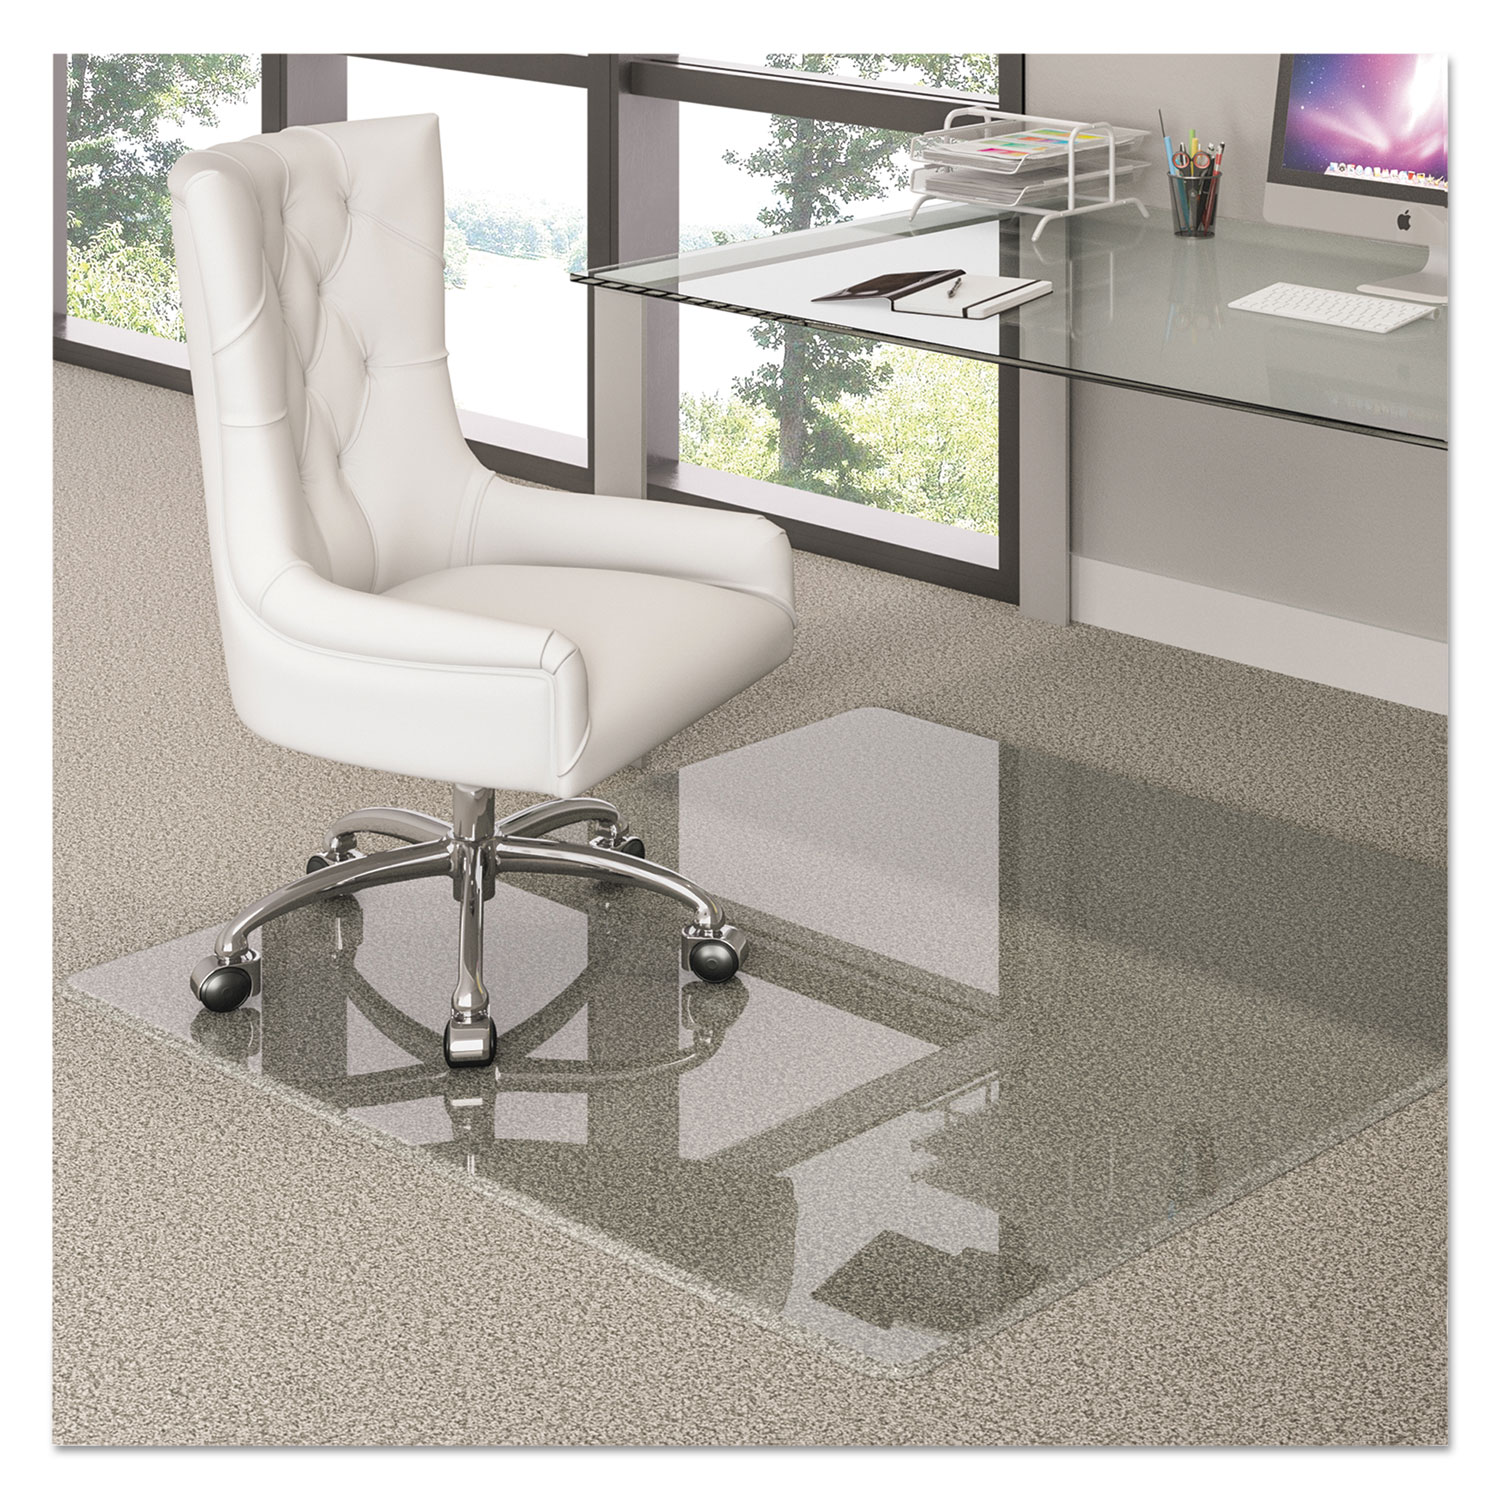 Premium Glass Chair Mat by deflecto DEFCMG70434860